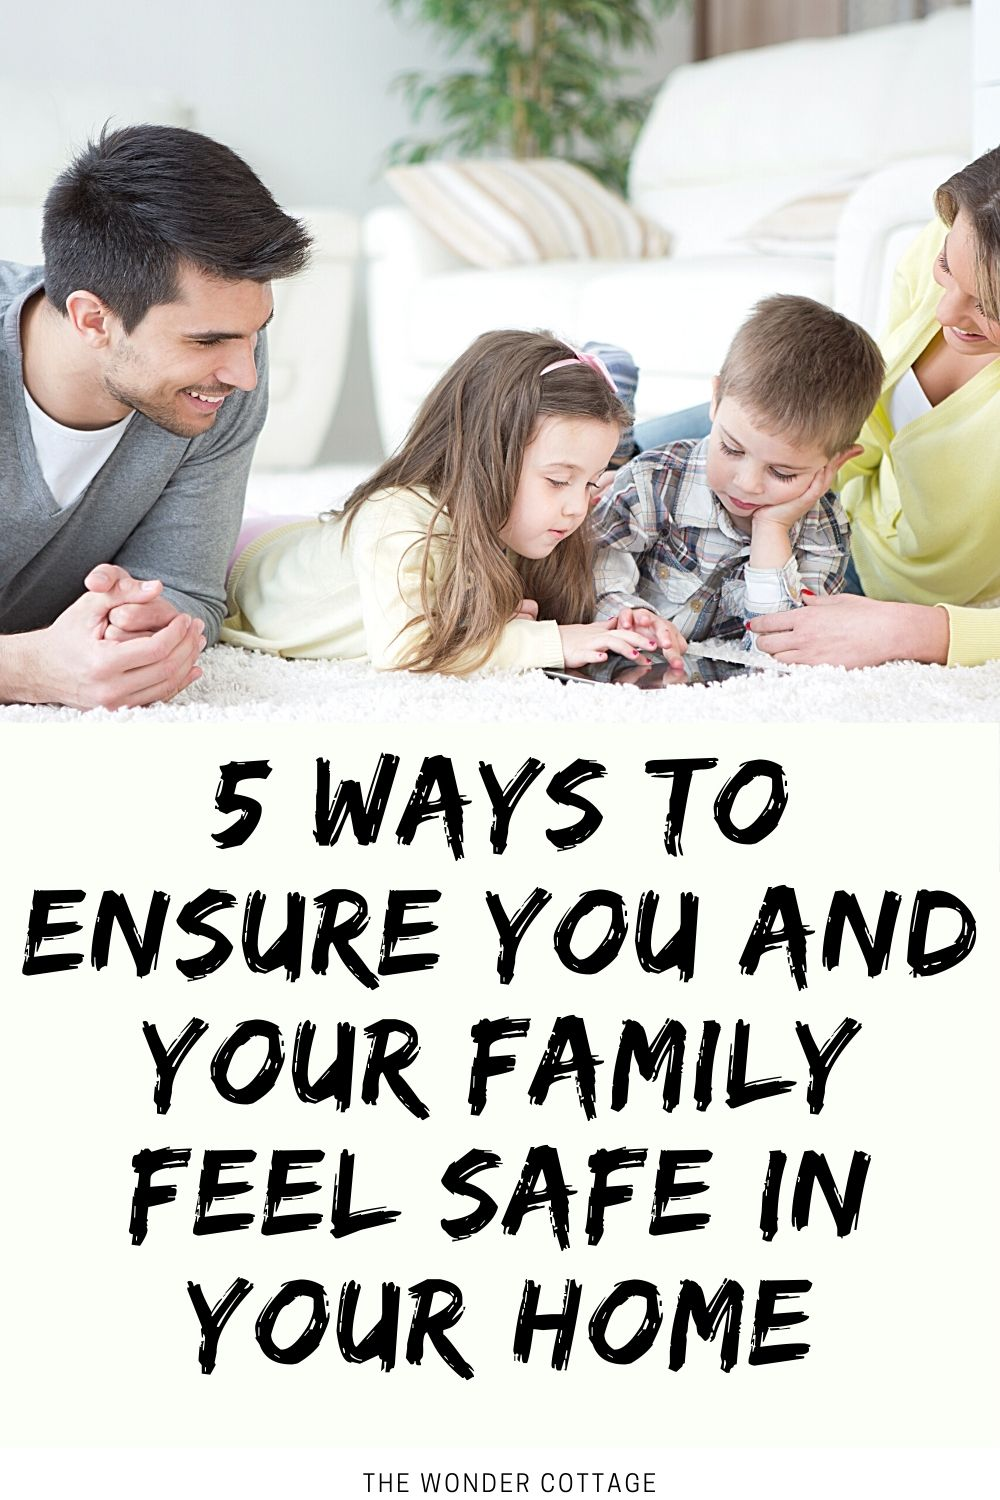 5 ways to ensure you and your family feel safe in your home